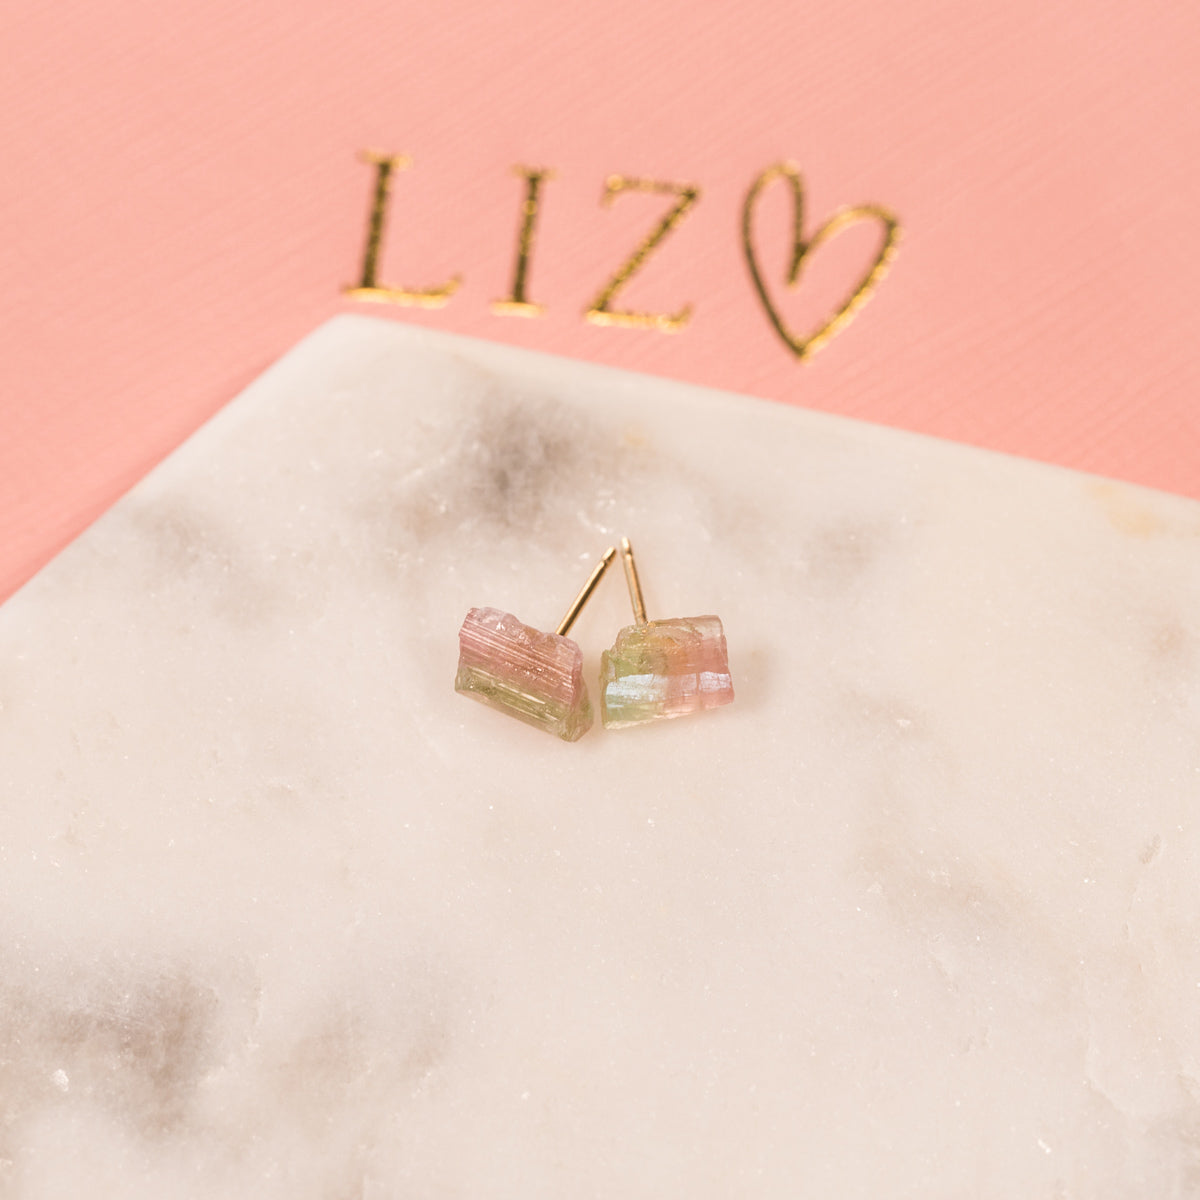 Watermelon Tourmaline Earrings, Raw tourmaline Earrings, Gold Stud Earrings, Natural Crystal Earrings, Stud Earrings, Gemstone Earrings, Healing Crystal Jewelry, Statement Earrings, Mismatched Earrings, Gemstone Earrings Liz.Beth Jewelry Co.